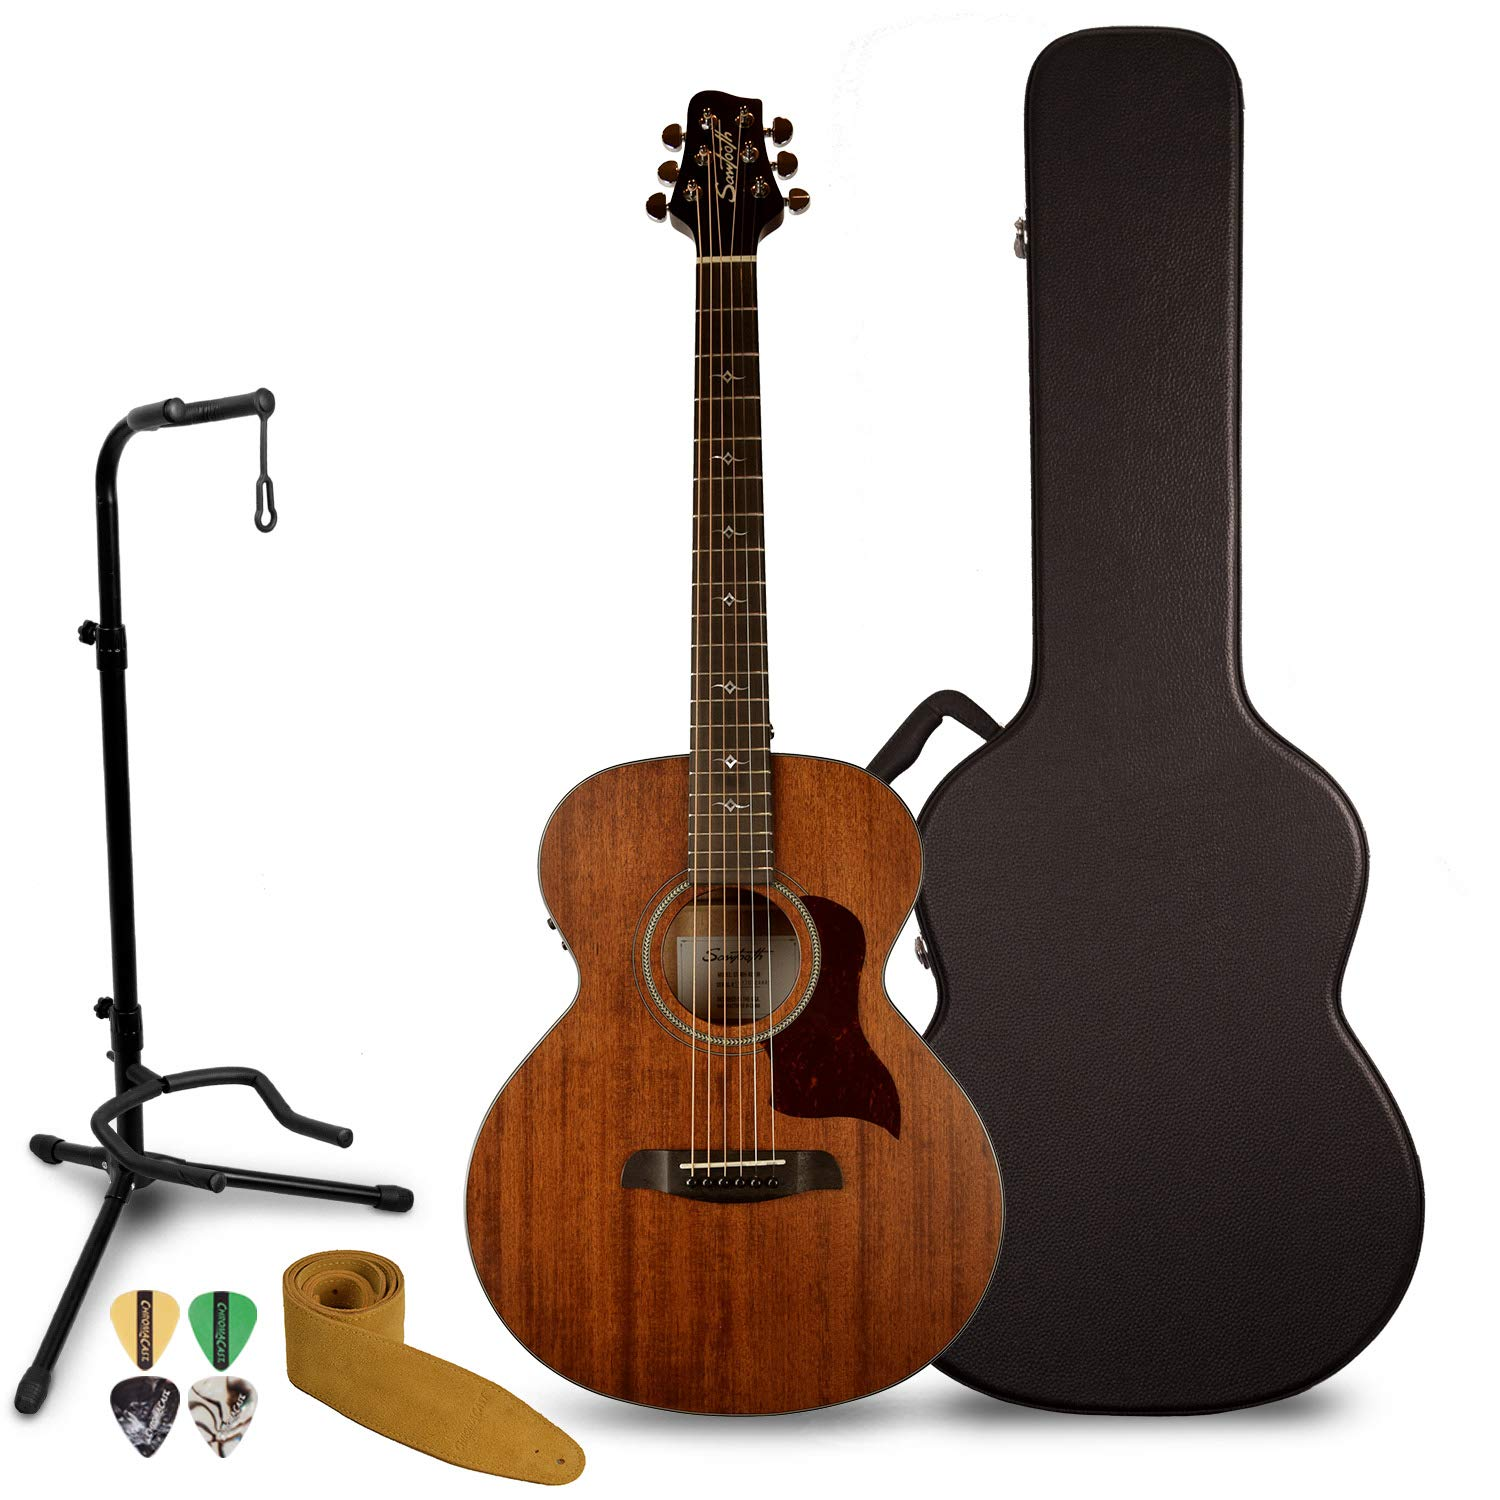 Sawtooth Mahogany Series Solid Mahogany Top Acoustic-Electric Mini Jumbo Guitar with Hard Case and Pick Sampler ST-MH-AEJJR-KIT-1